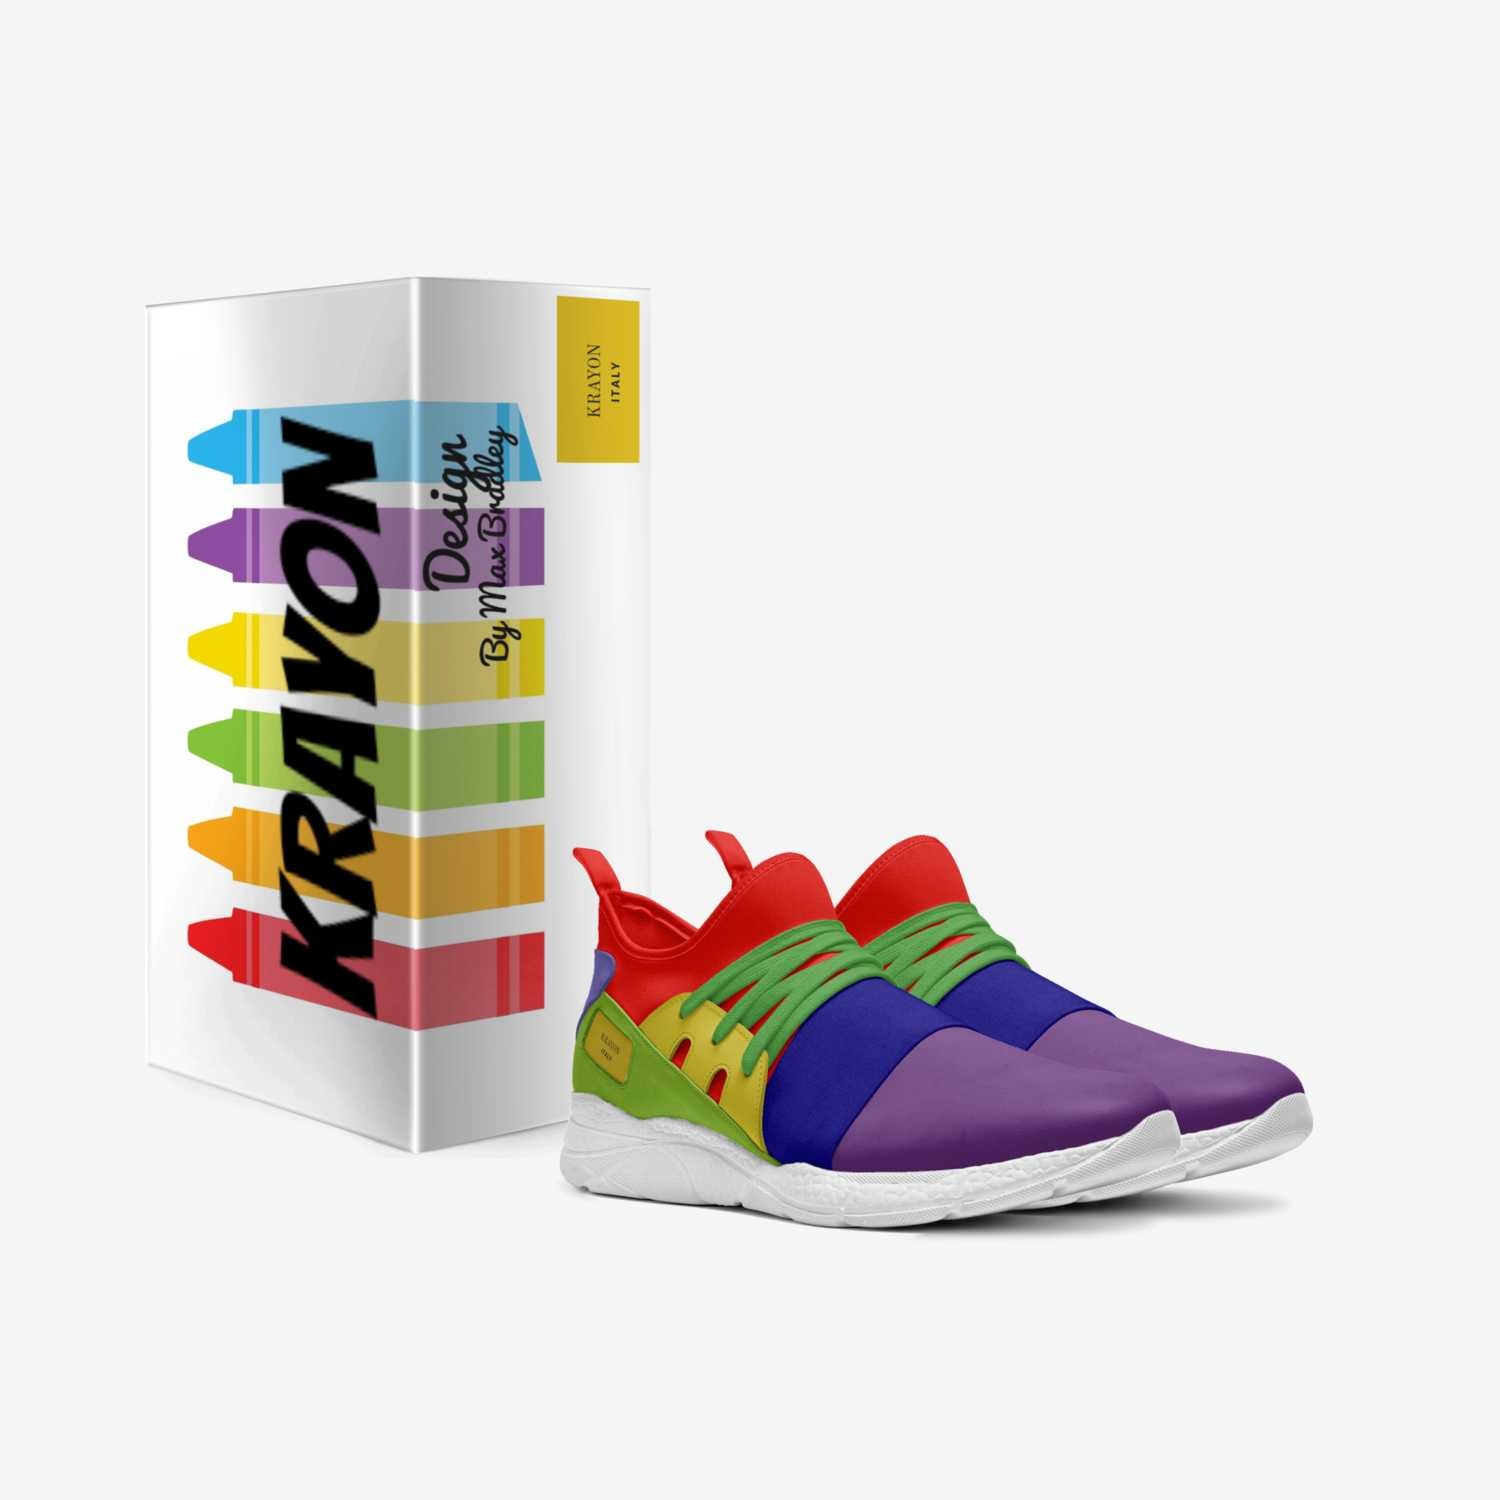 KRAYON custom made in Italy shoes by Max Bradley | Box view